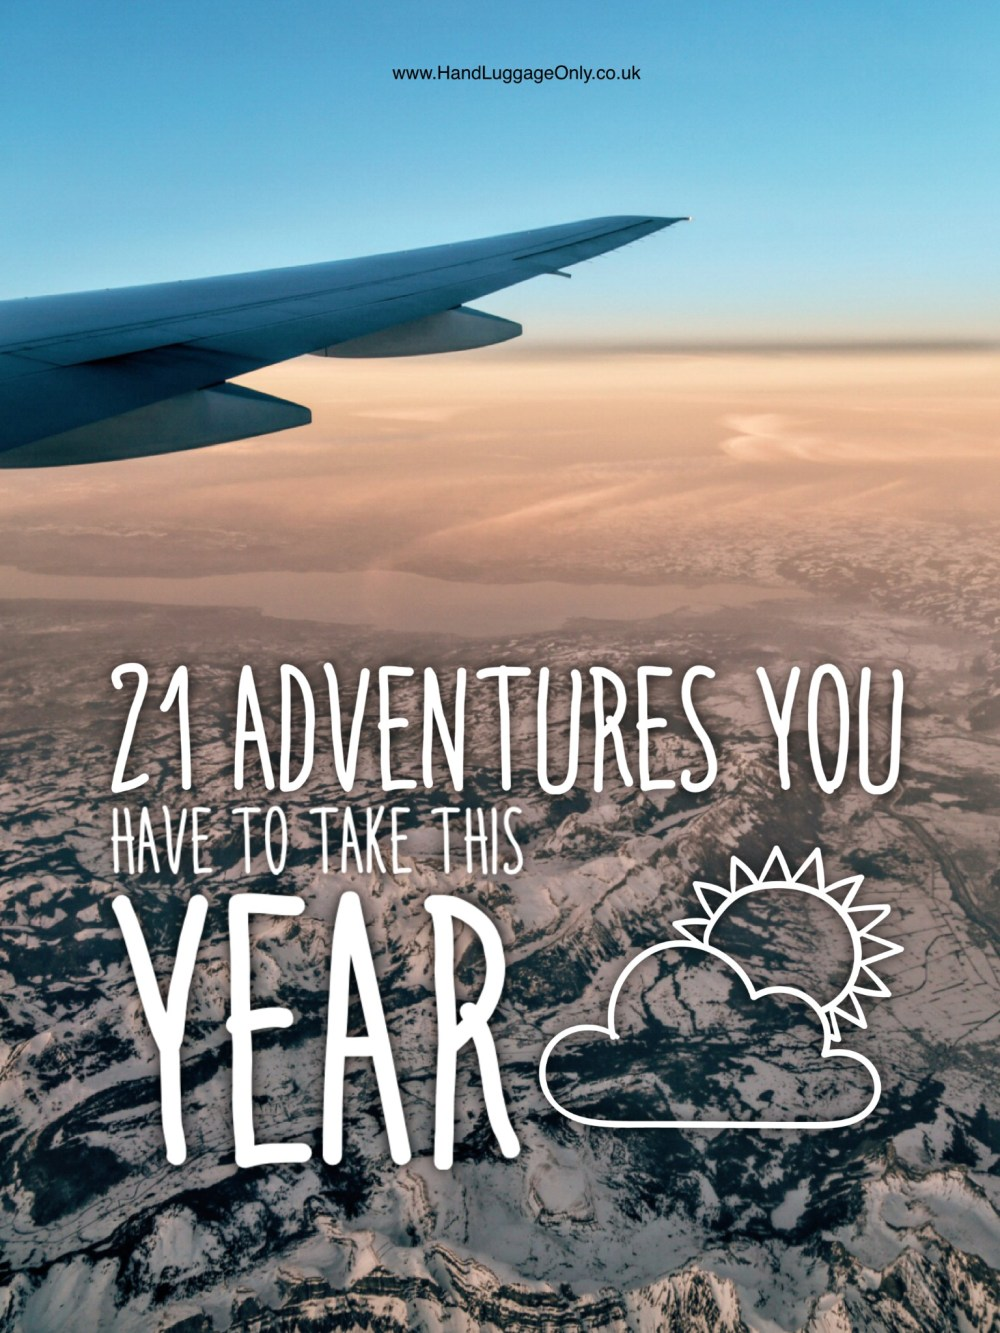 21 Adventures You Have To Take This Year! (1)